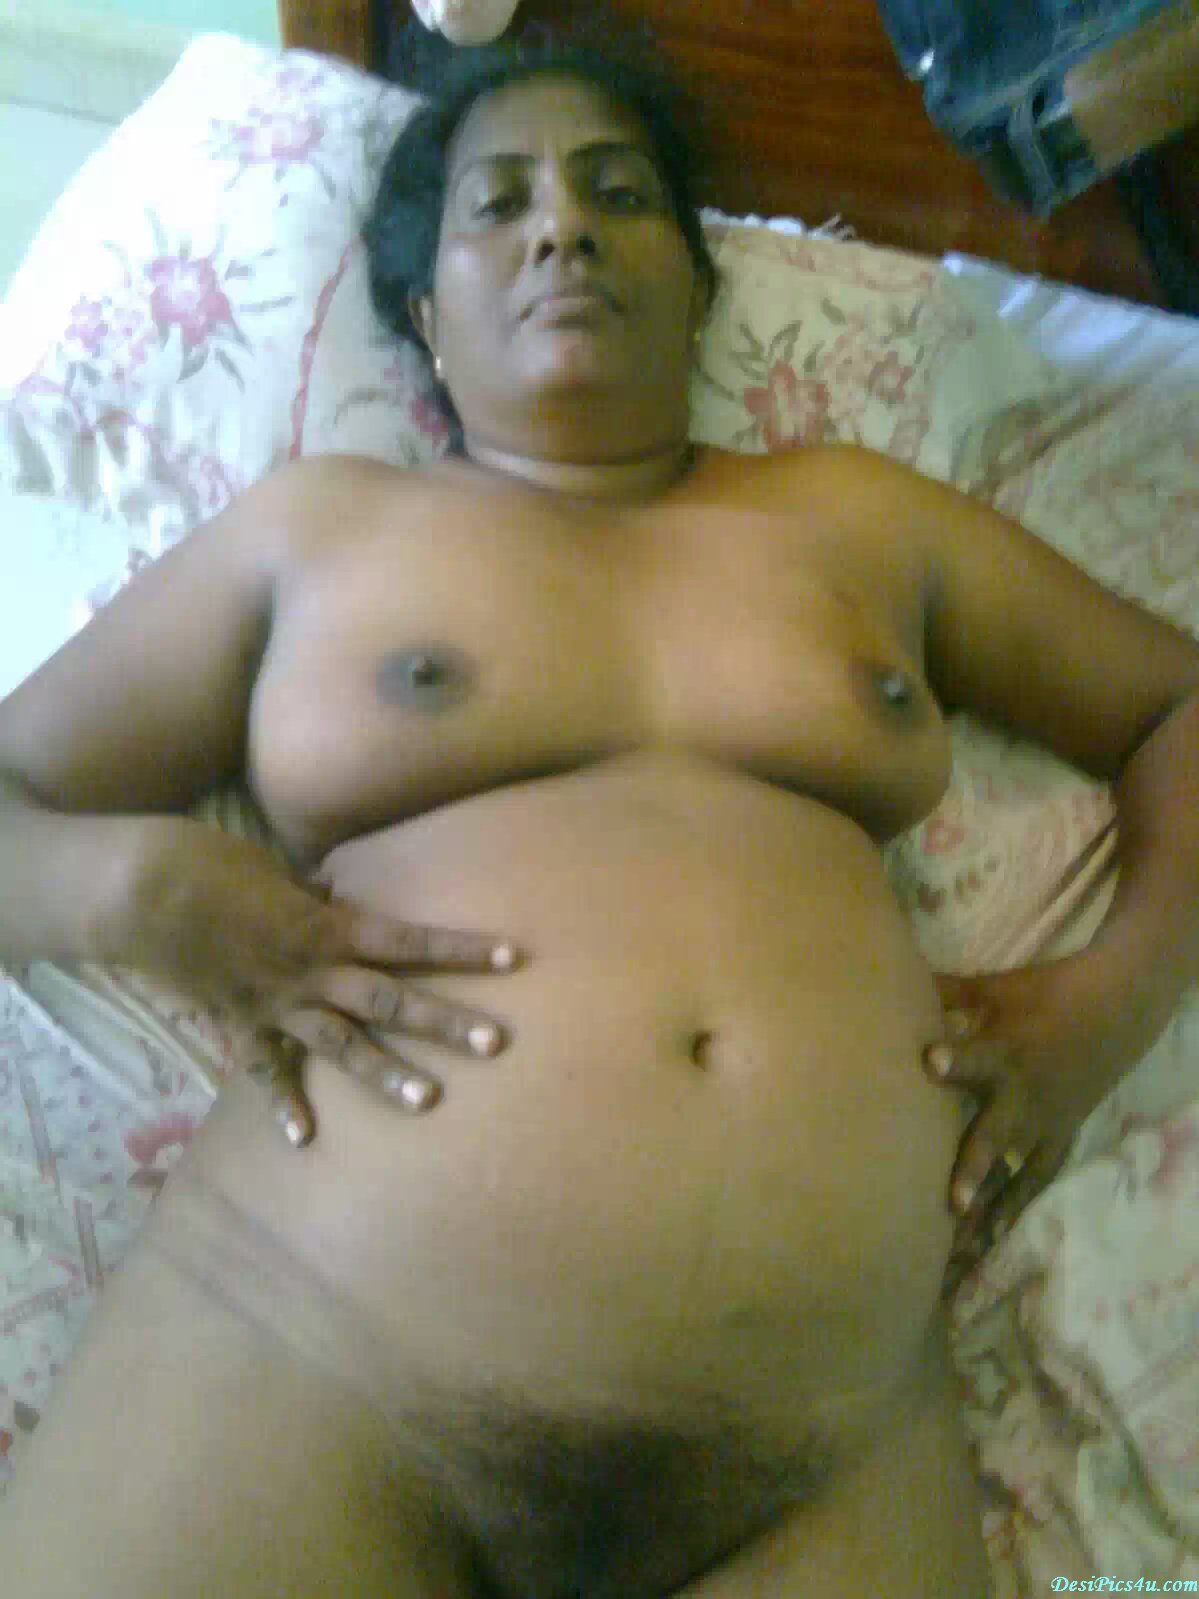 FATTY N BEAUTY: OLD INDIAN AUNTY SHOWING HAIRY PUSSY.